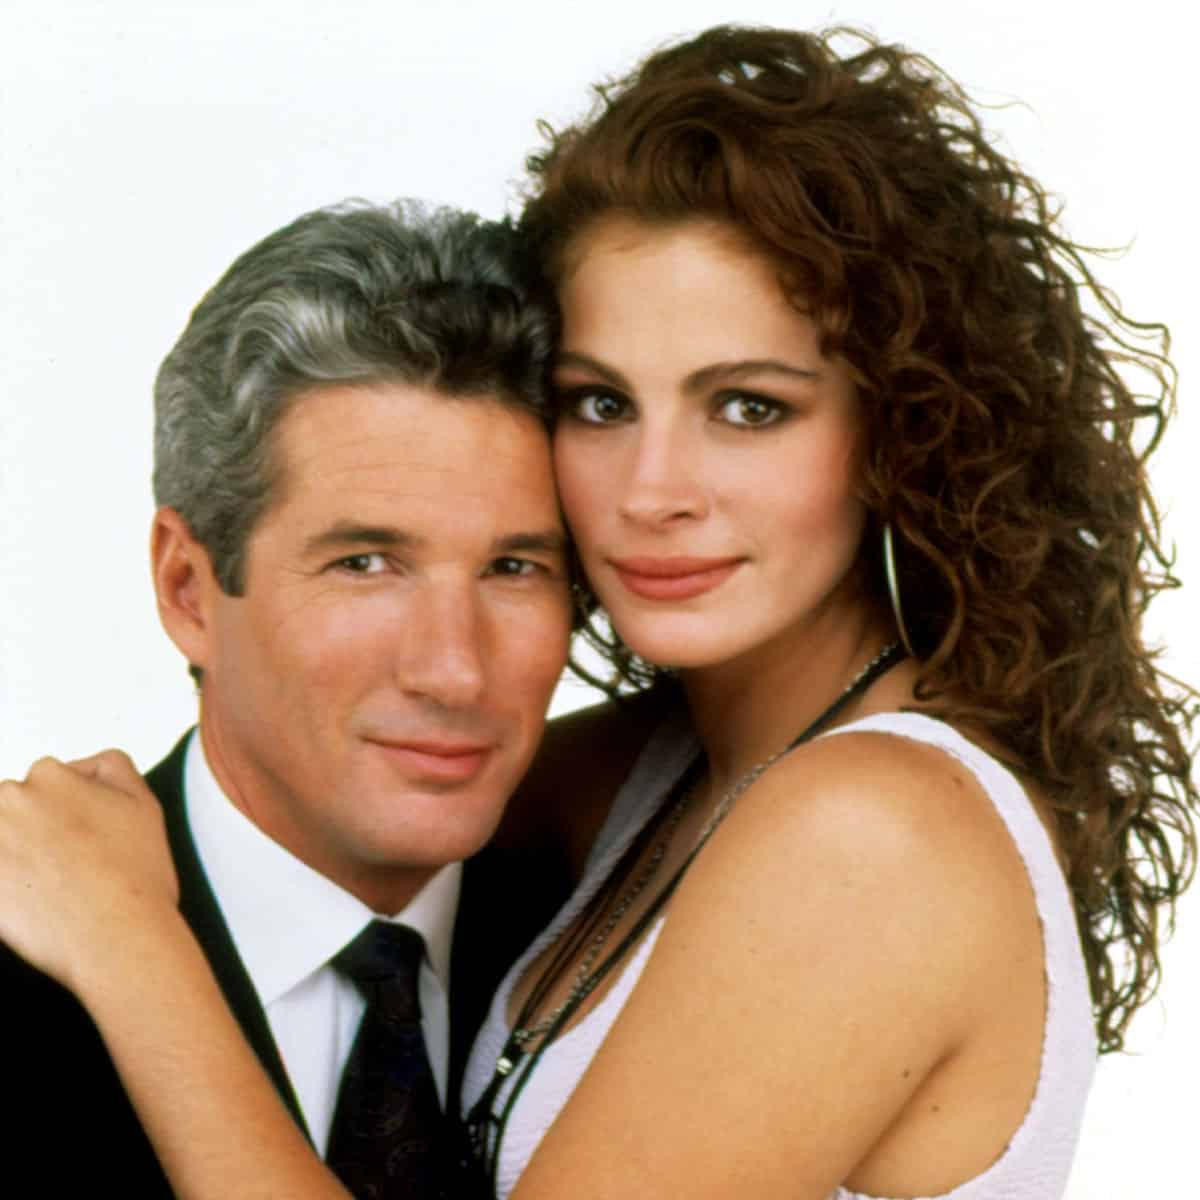 pretty woman movie night – the treehouse belfast